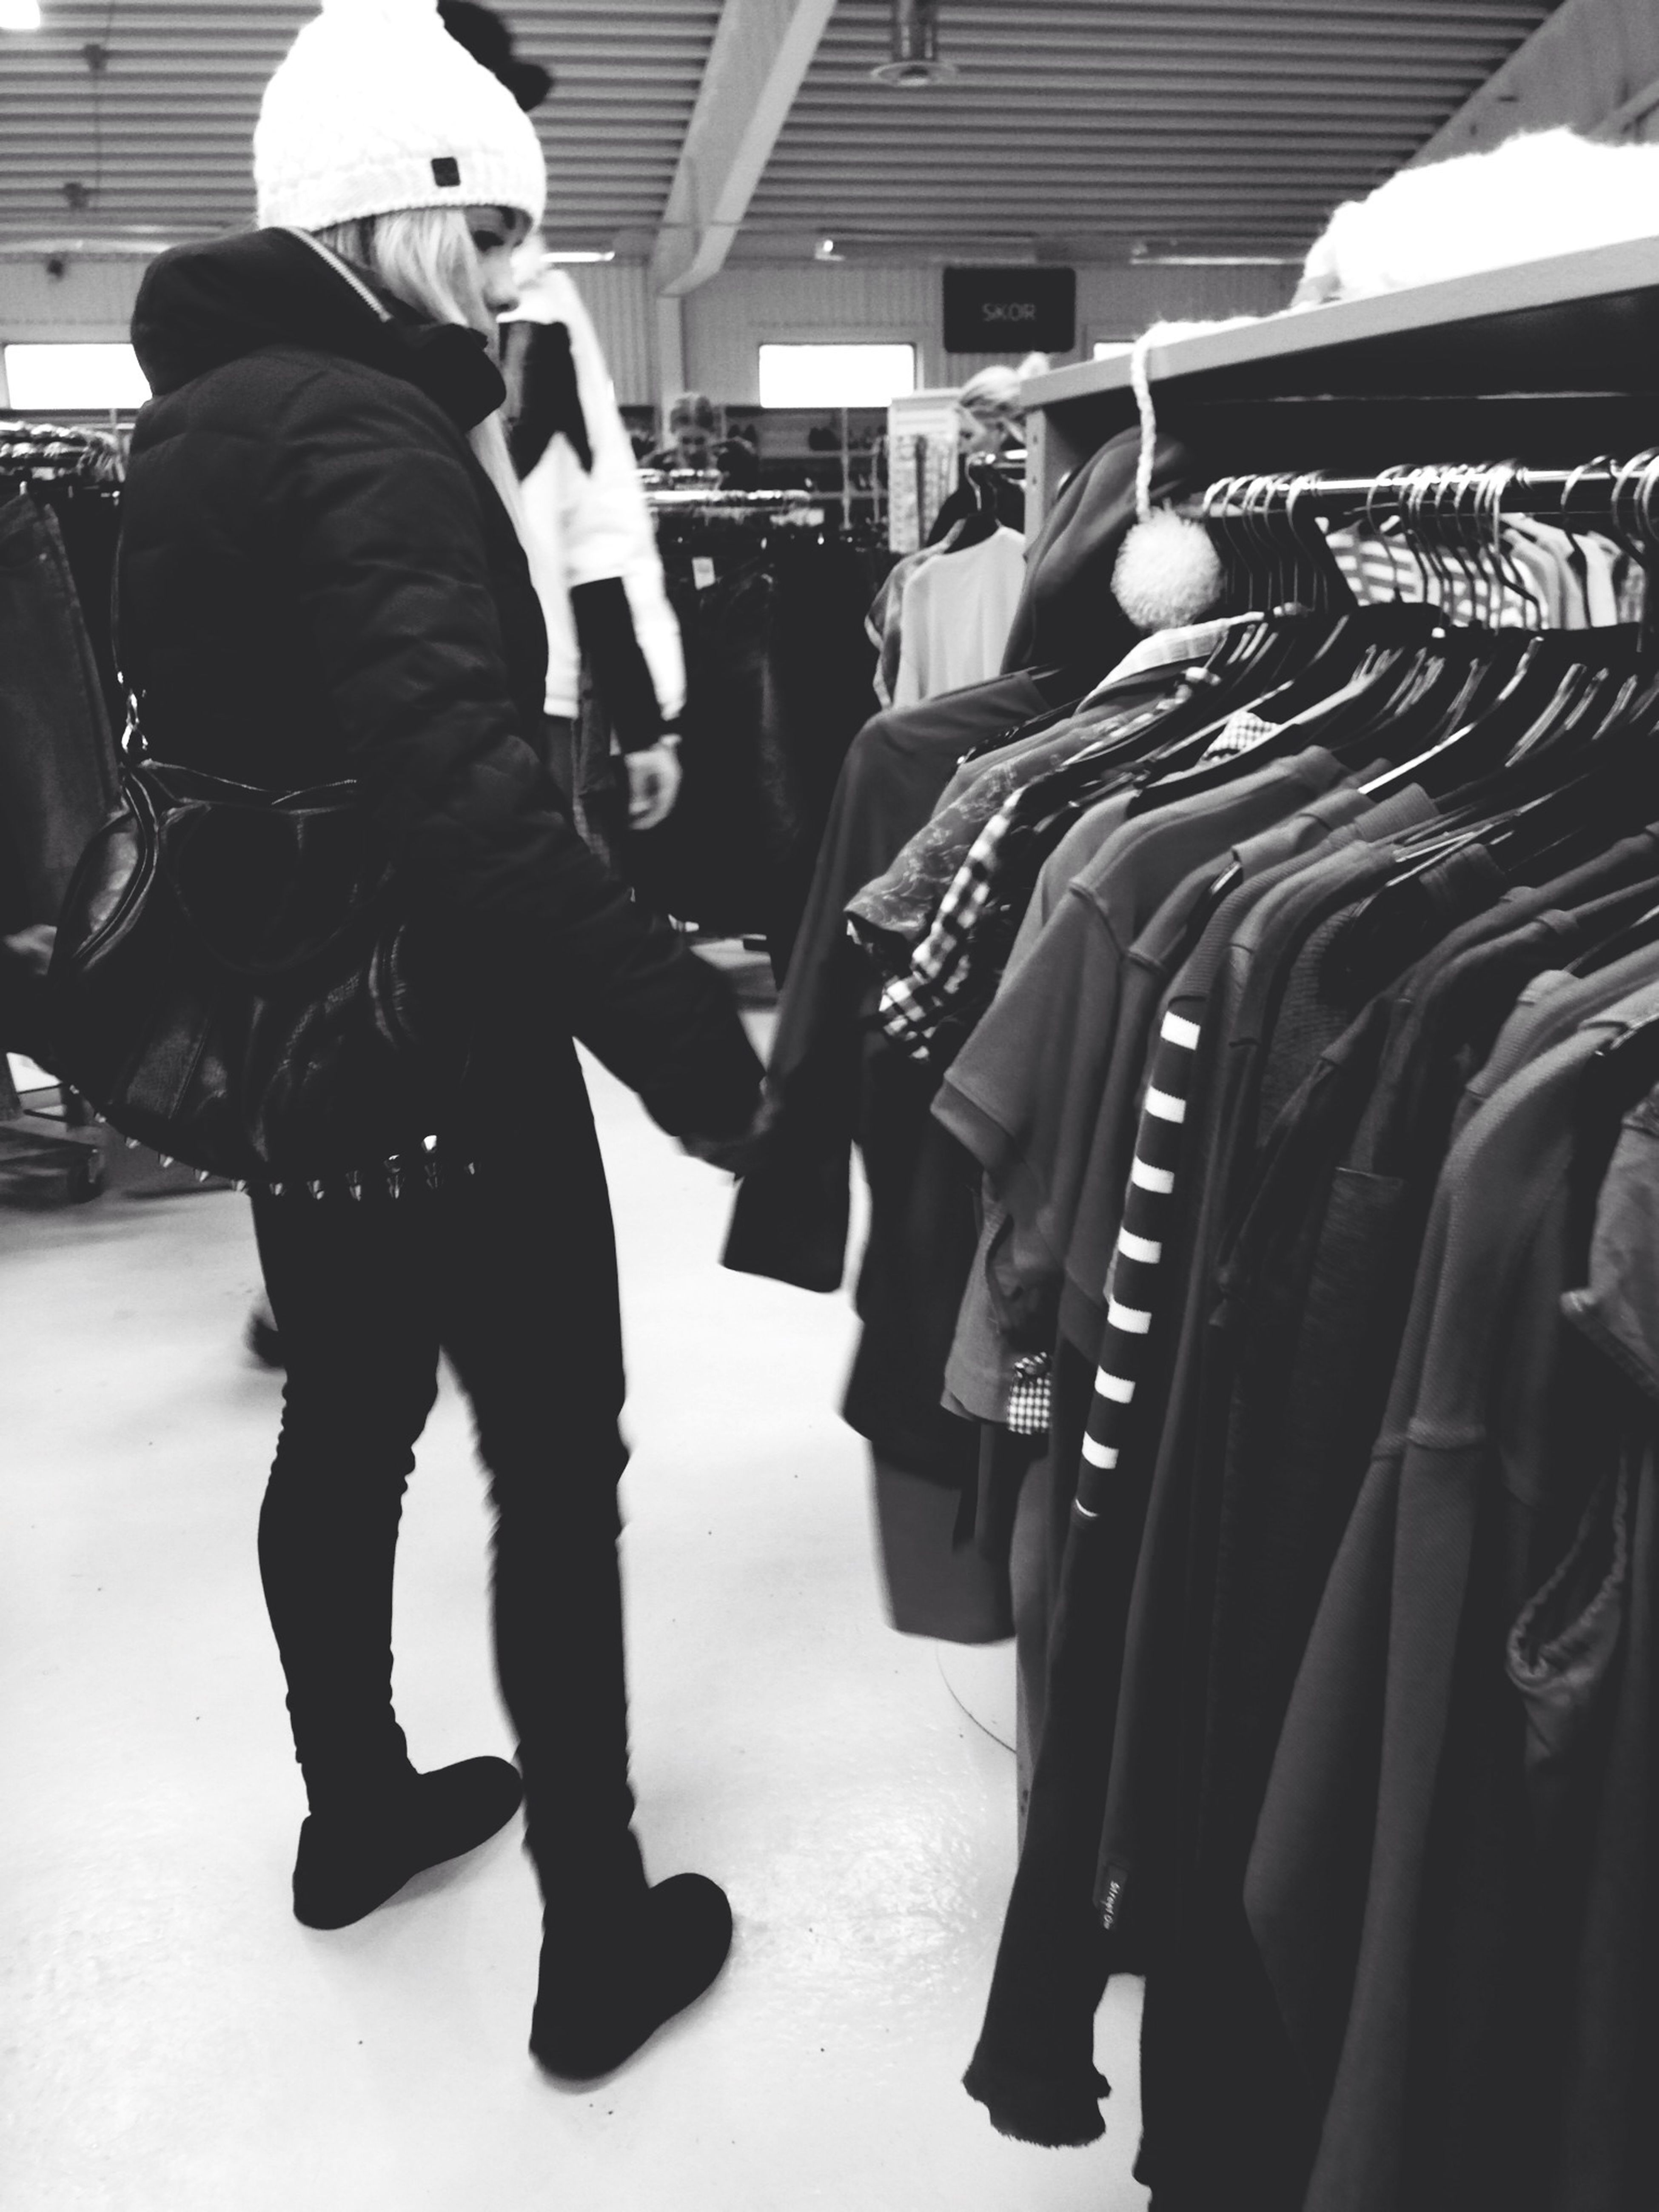 Second hand shopping with Malin.